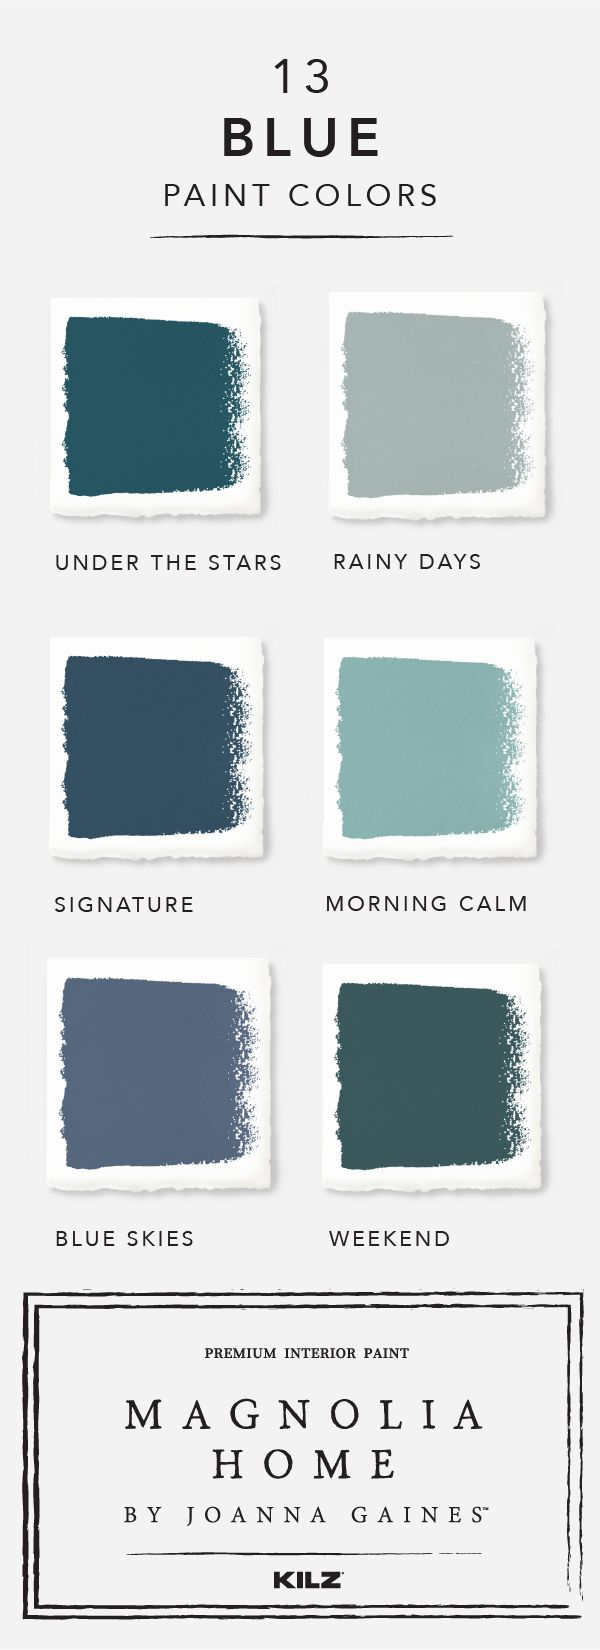 You'll have a hard time choosing favorites when it comes to these blue hues from Magnolia Home by Joanna Gaines™ paint collection. The gorgeous shades range from light neutrals like Rainy Days, to deep blues like Weekend. Click here to explore the full collection and find the perfect color for your home.